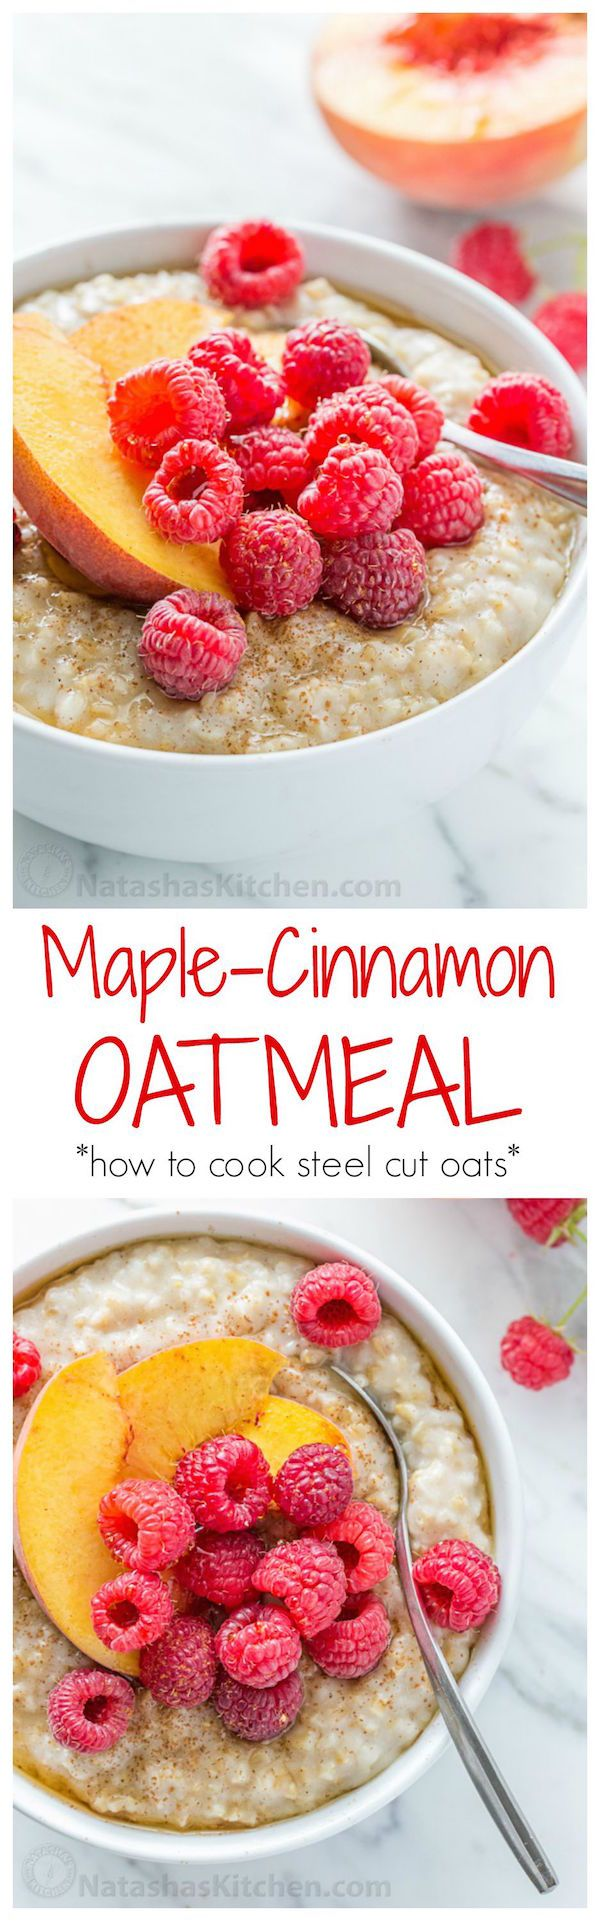 Steel Cut Oats are surprisingly easy to make and it's kid friendly! The texture, flavor and goodness of real oatmeal can't be beat! | natashaskitchen.com